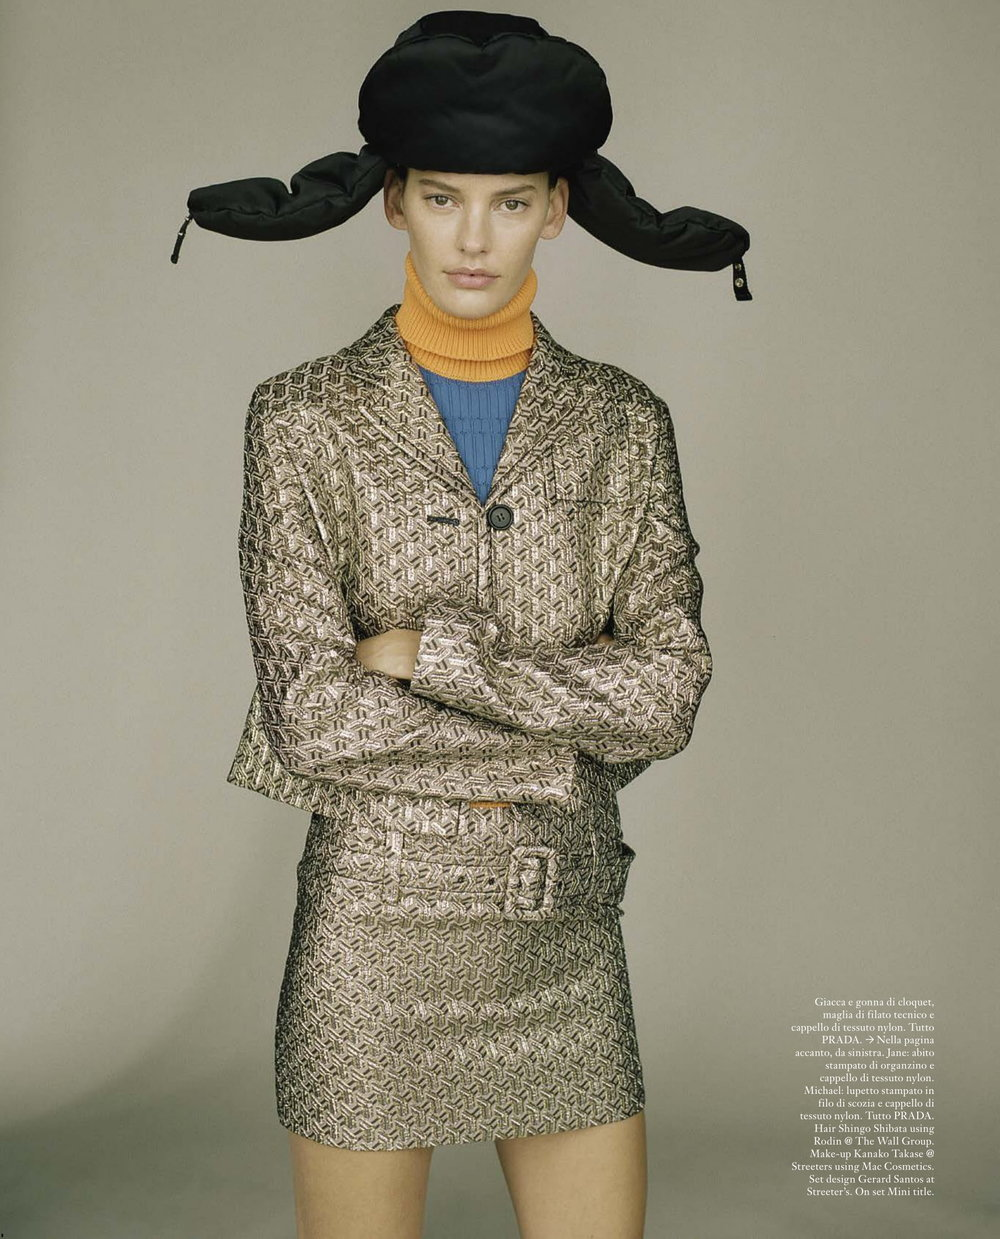 Michael Bailey-Gates for Vogue Italia November 2018 (10).jpg